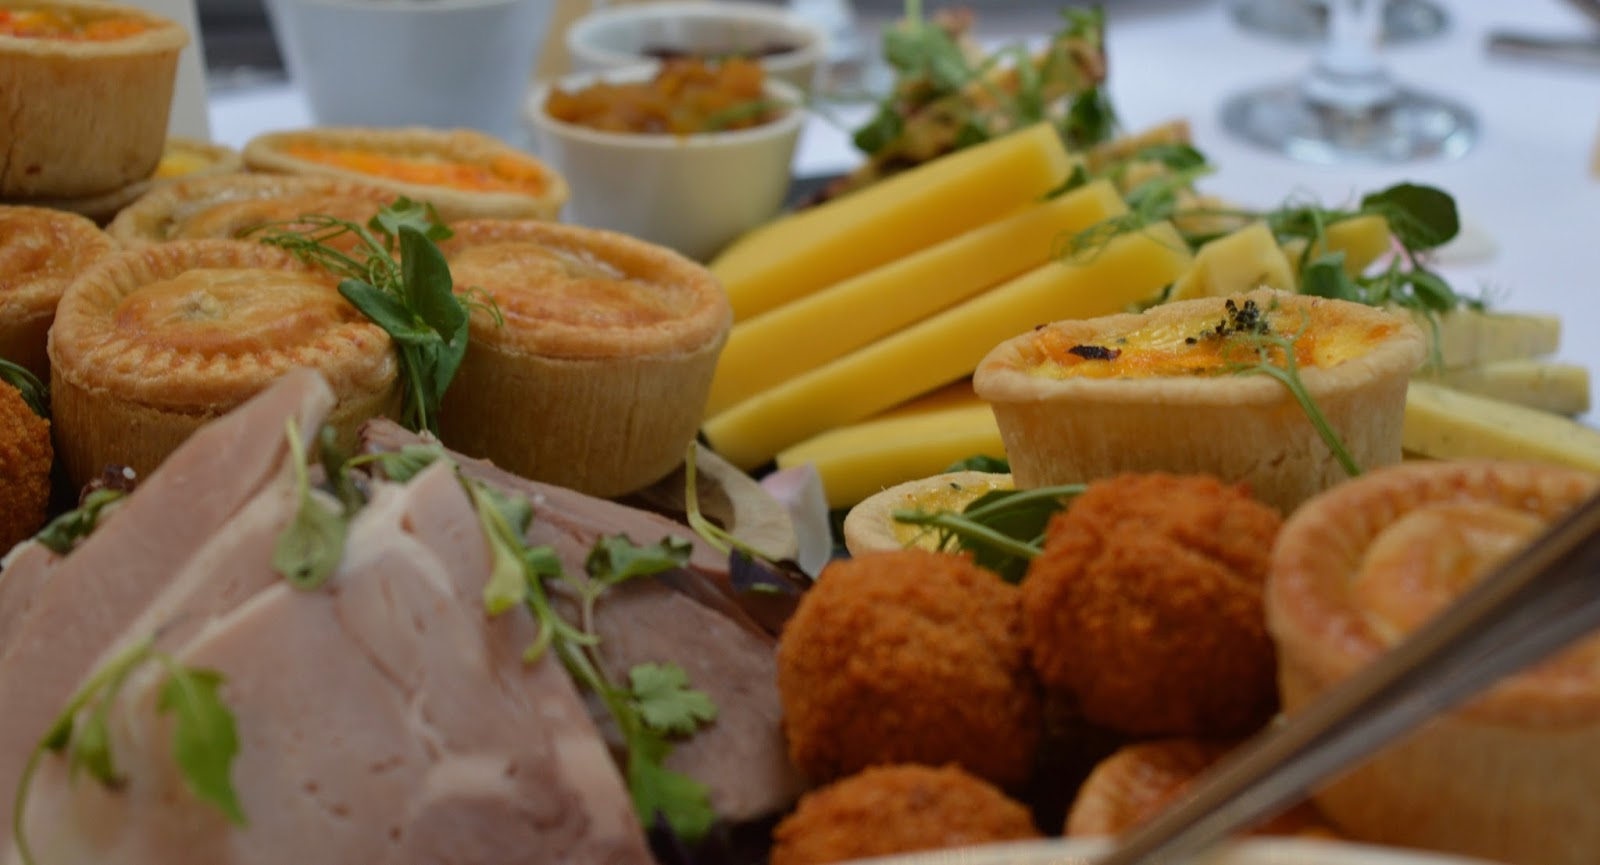 Weddings at The Parlour at Blagdon in Northumberland - Northumberland High Tea Wedding Breakfast